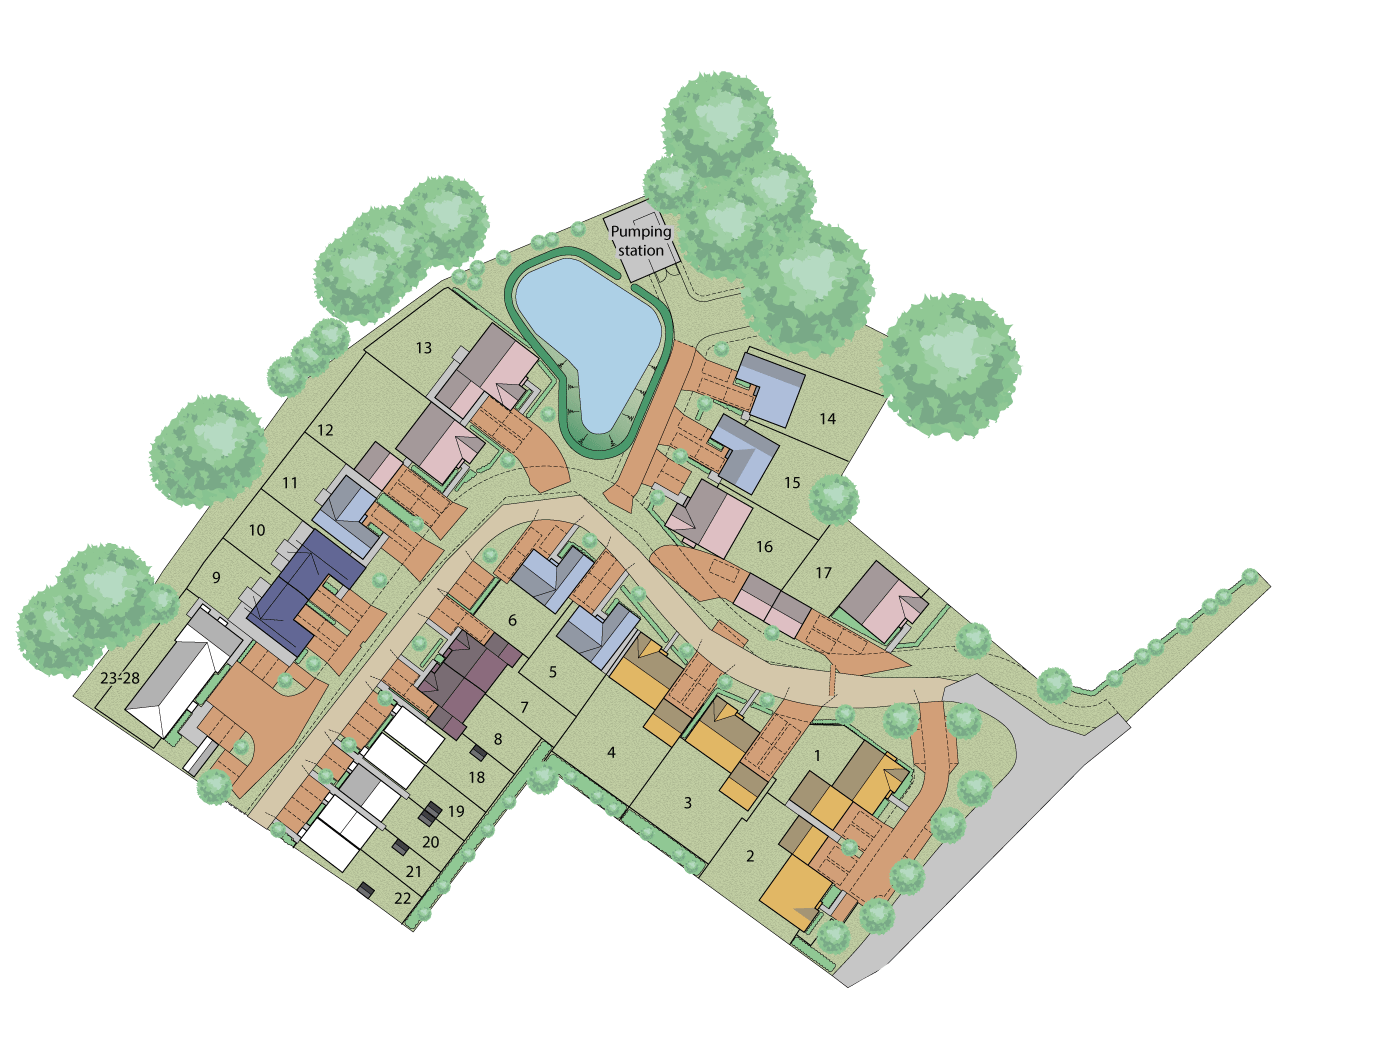 The Collection plan